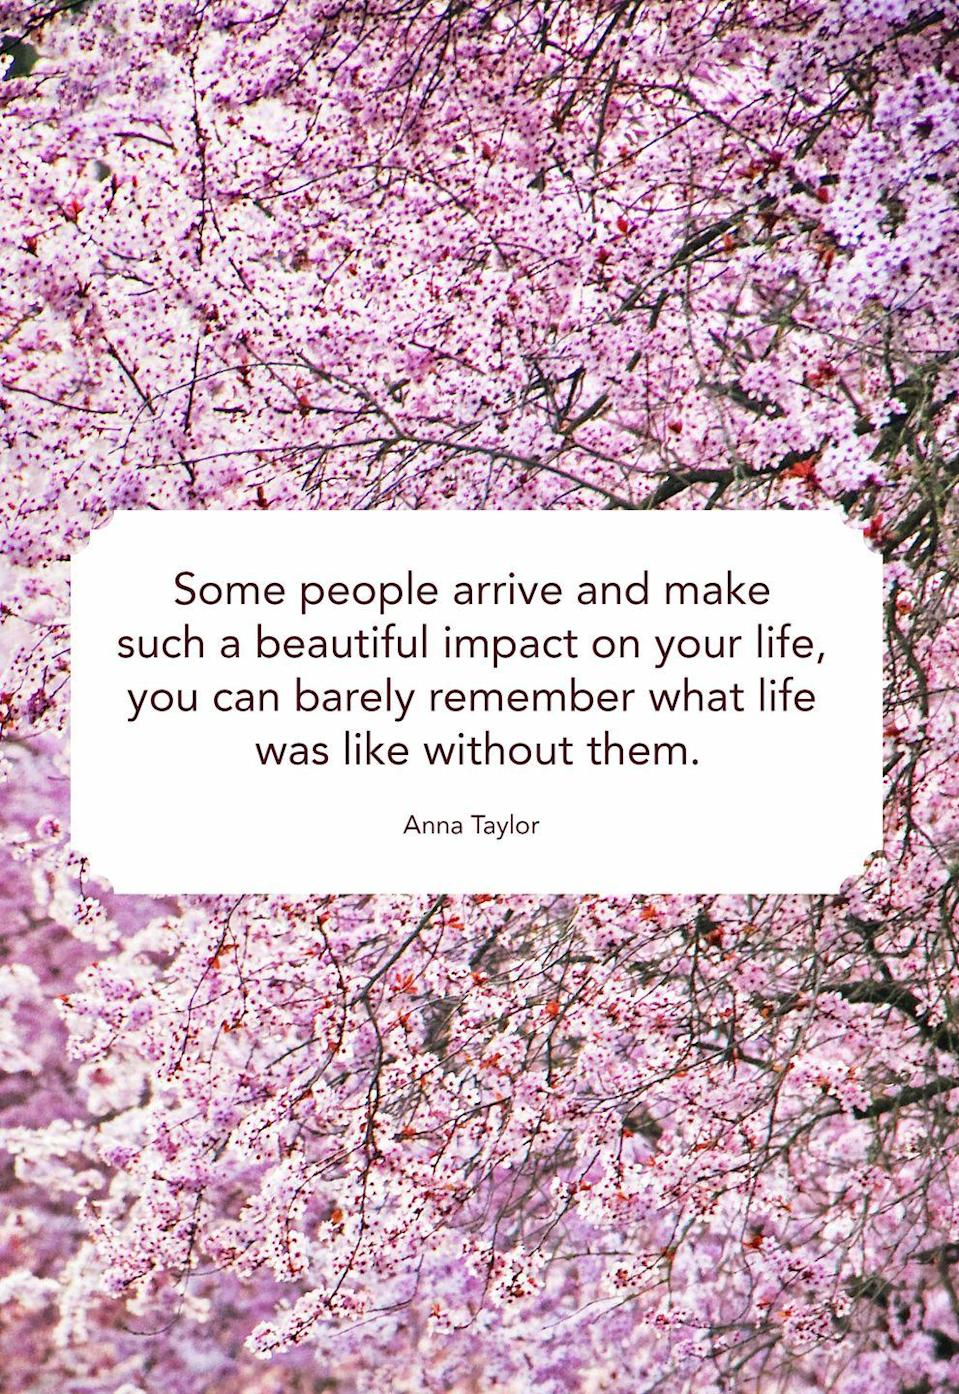 "<p>""Some people arrive and make such a beautiful impact on your life, you can barely remember what life was like without them.""</p>"